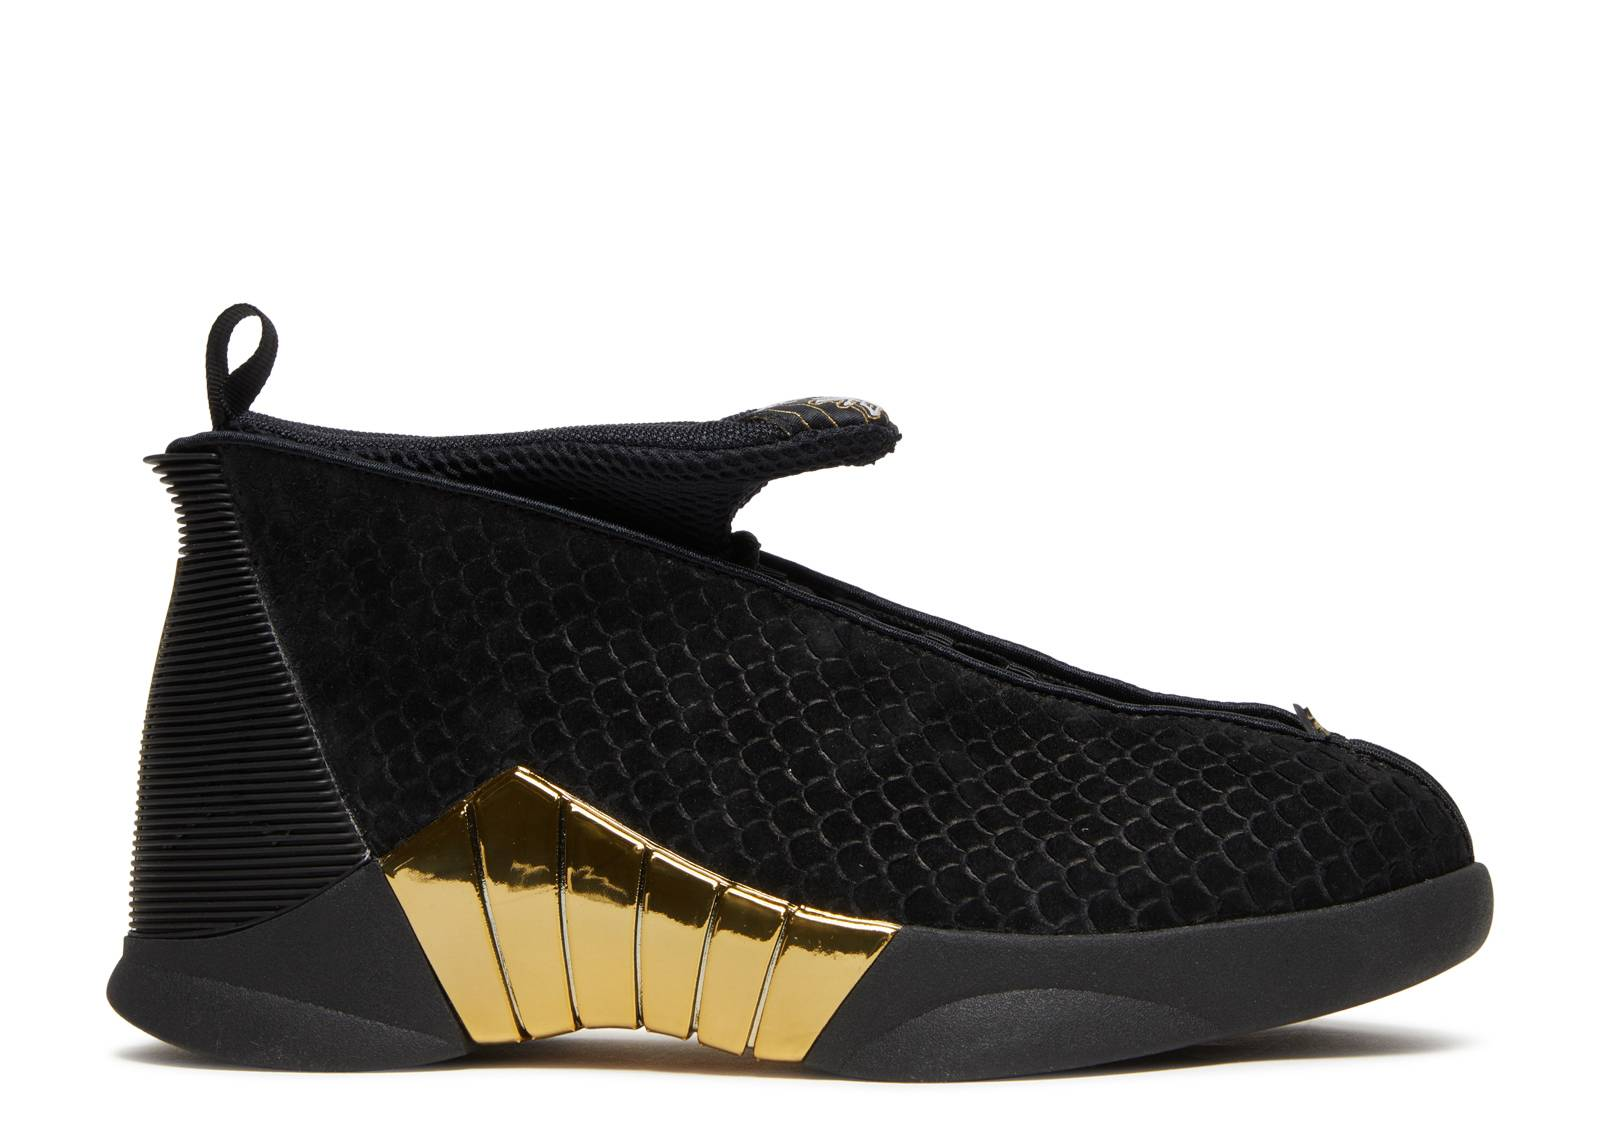 9e5320a80 Air Jordan 15 Retro DB (gs) - Air Jordan - bv7110 017 - black white ...